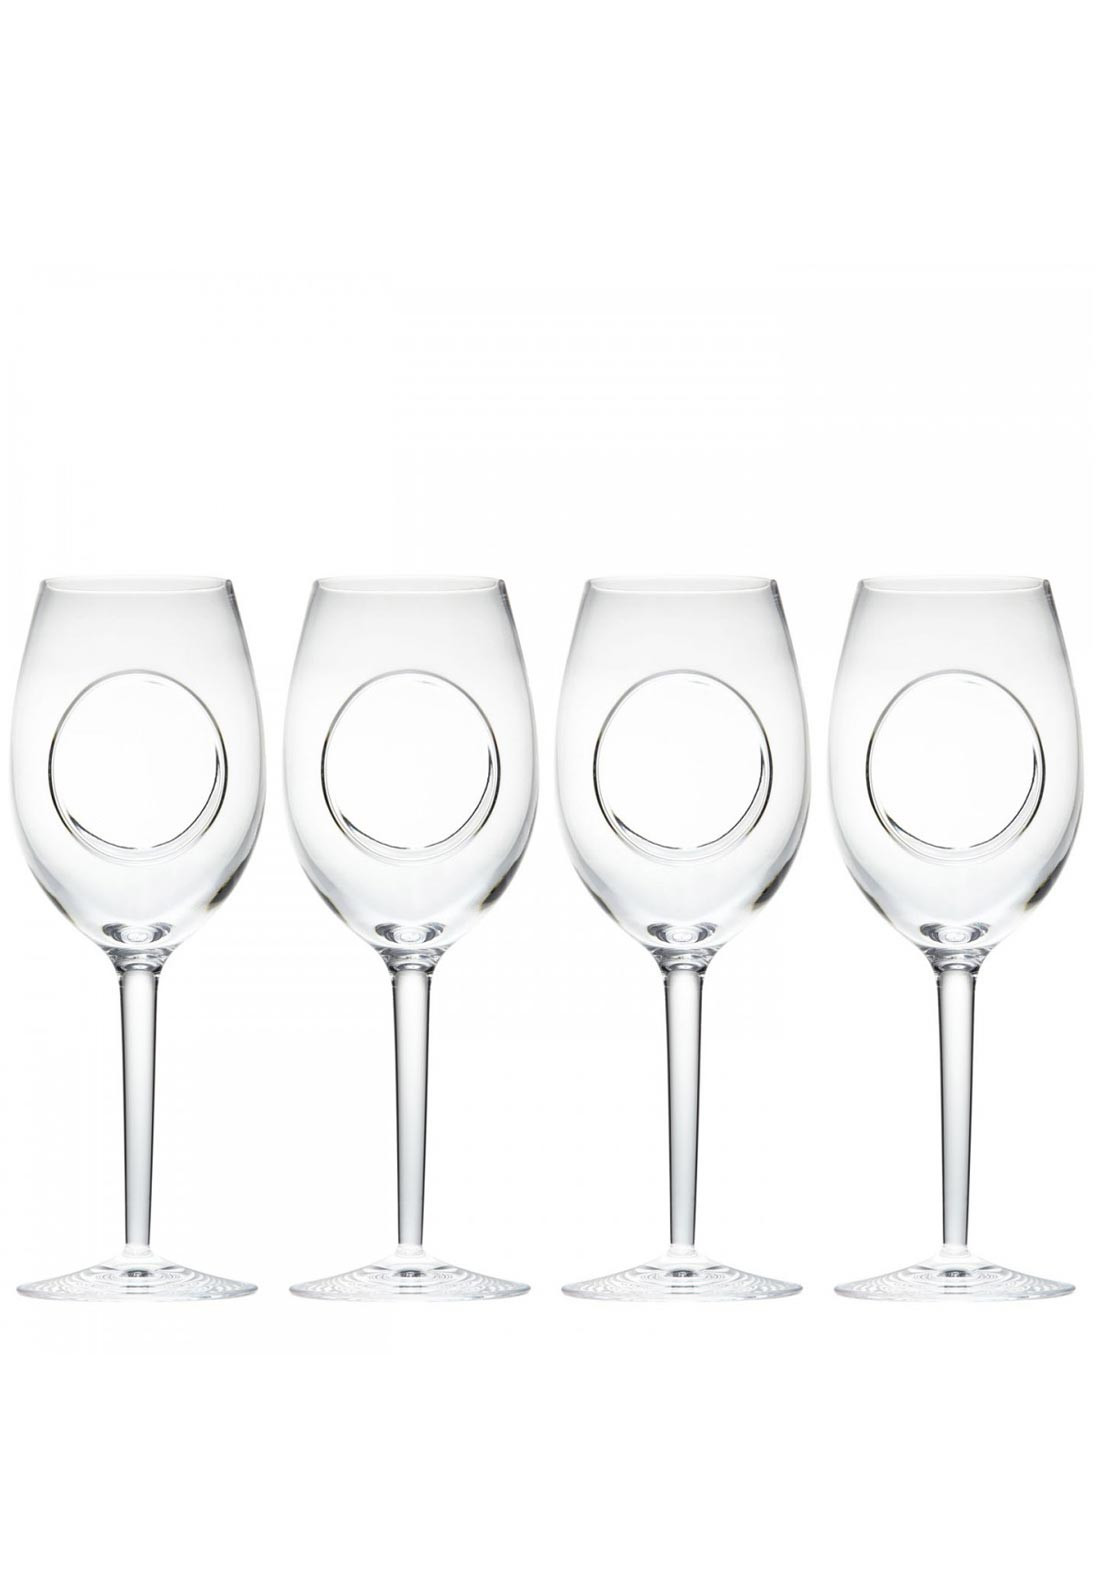 John Rocha at Waterford Circa Wine Glasses, Set of 4